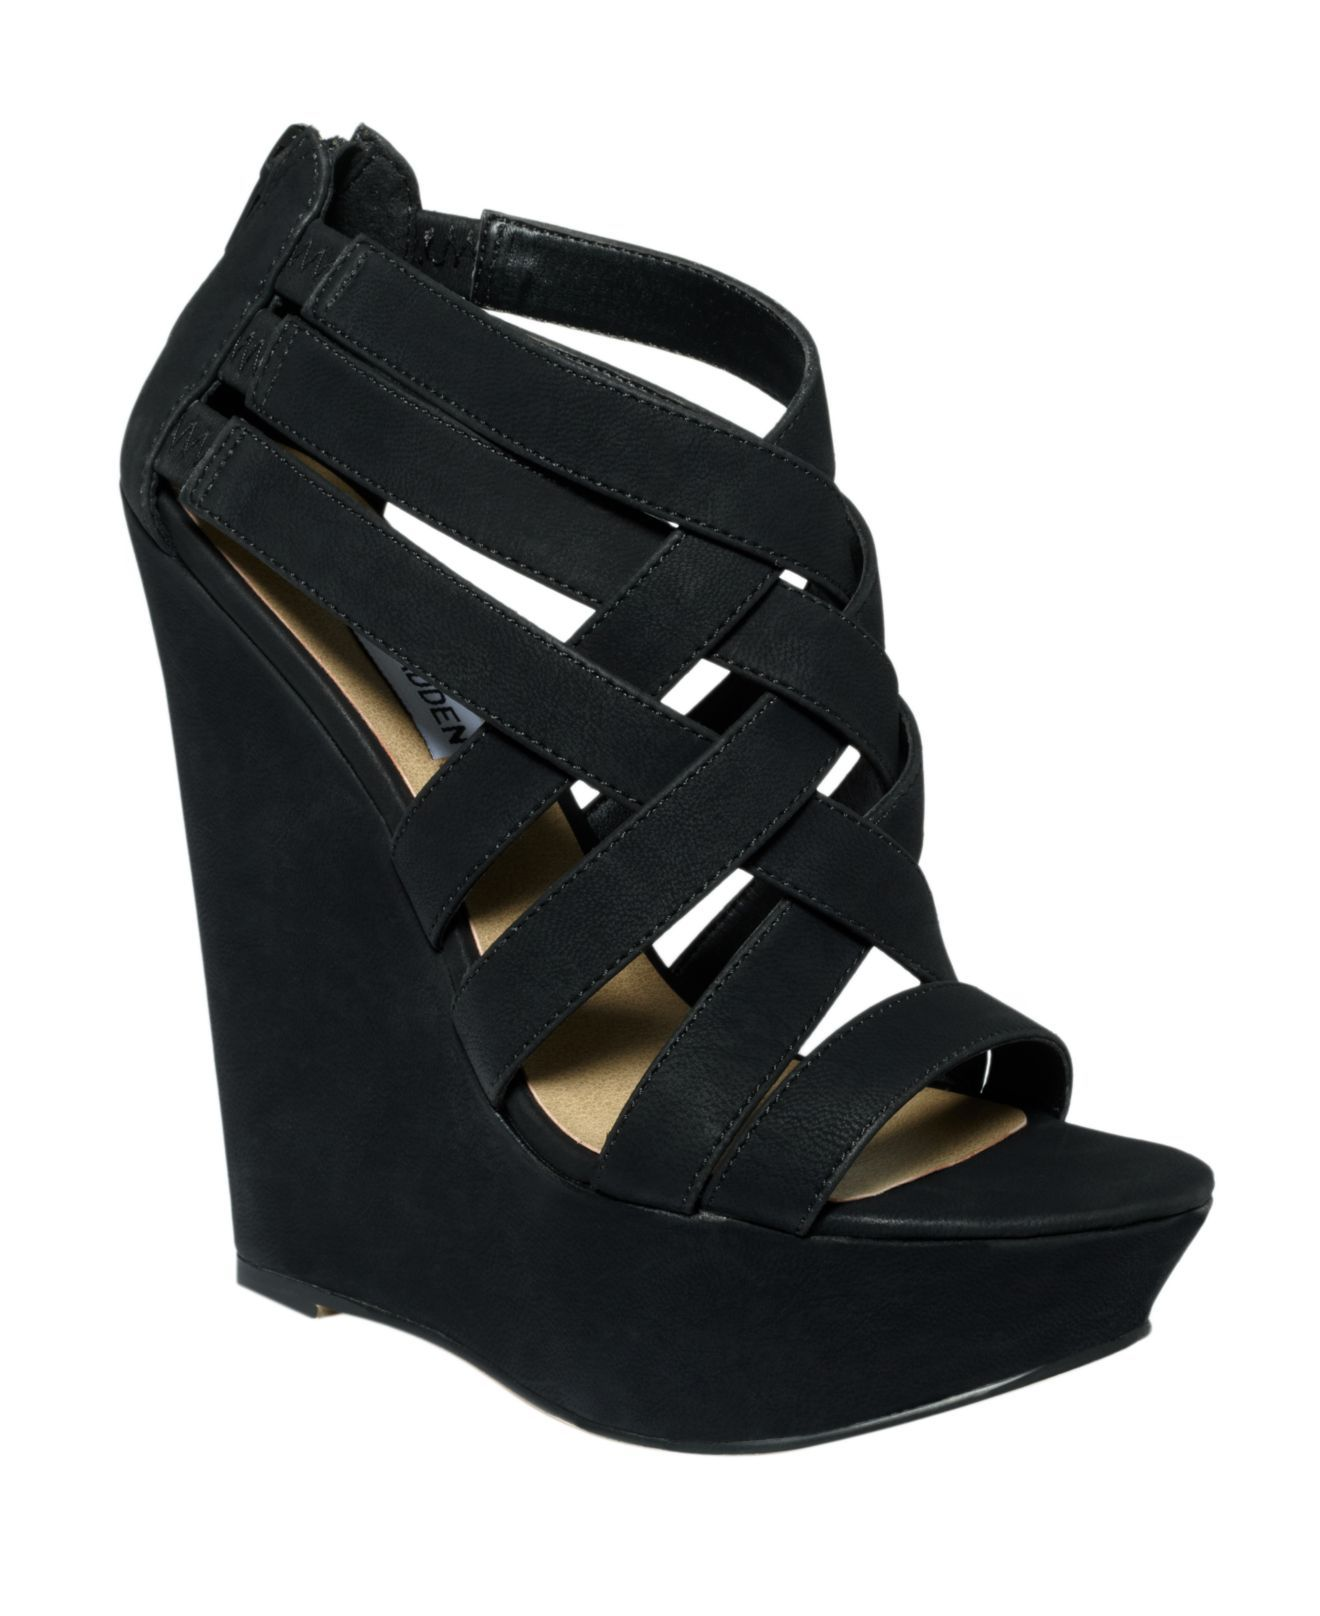 6e47df73952 black wedge | shoes | Shoes, Platform wedge sandals, Wedge shoes